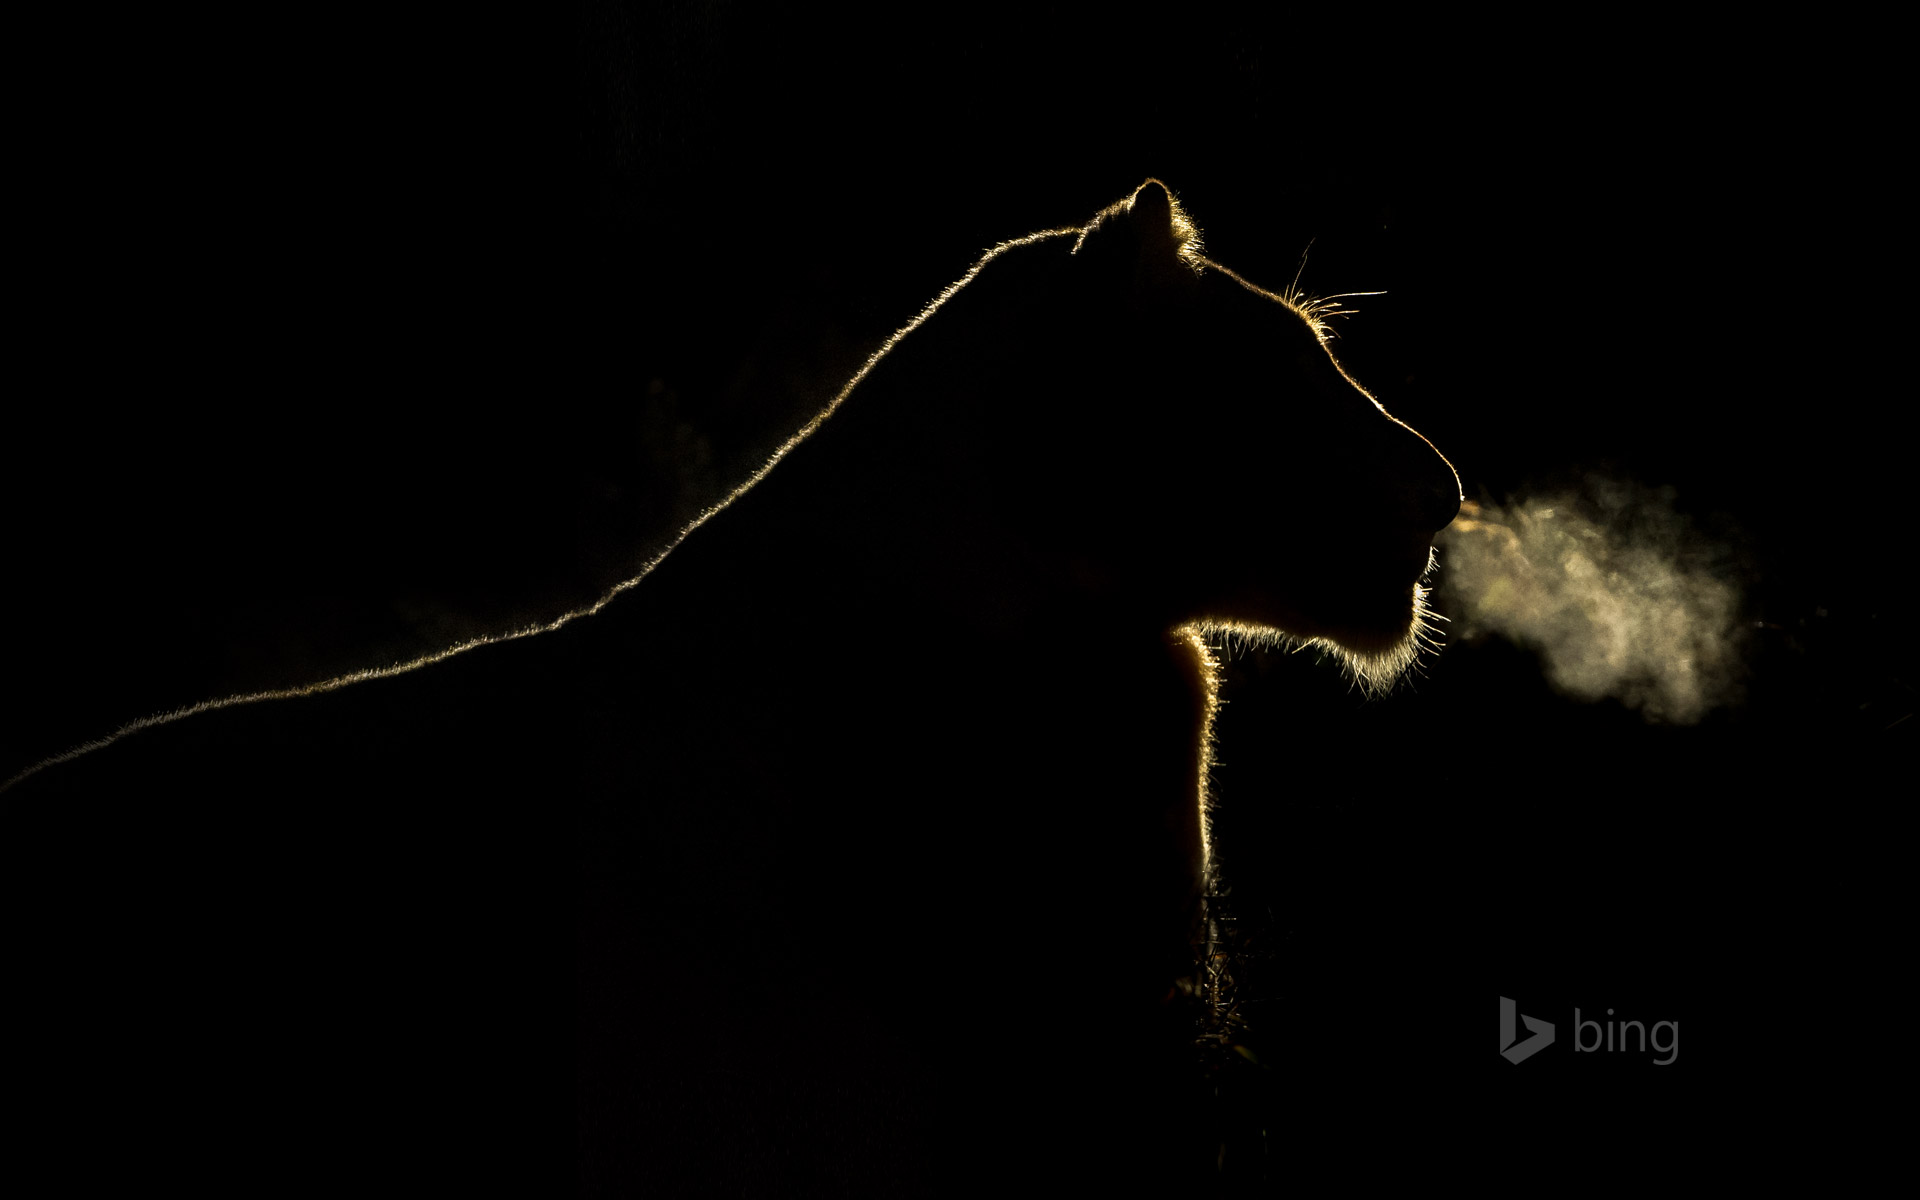 A lioness at night in the Sabi Sand Game Reserve, South Africa